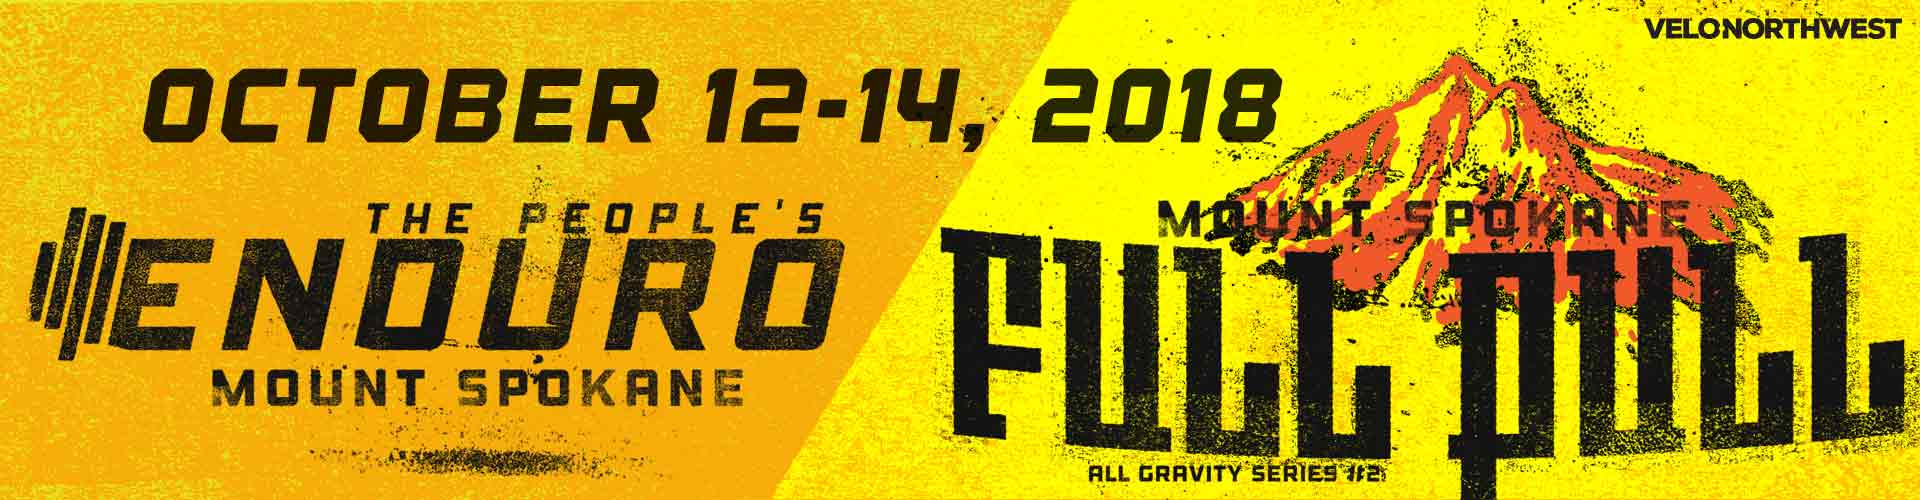 The People's Enduro & Full Pull – Mt Spokane – October 12-14, 2018